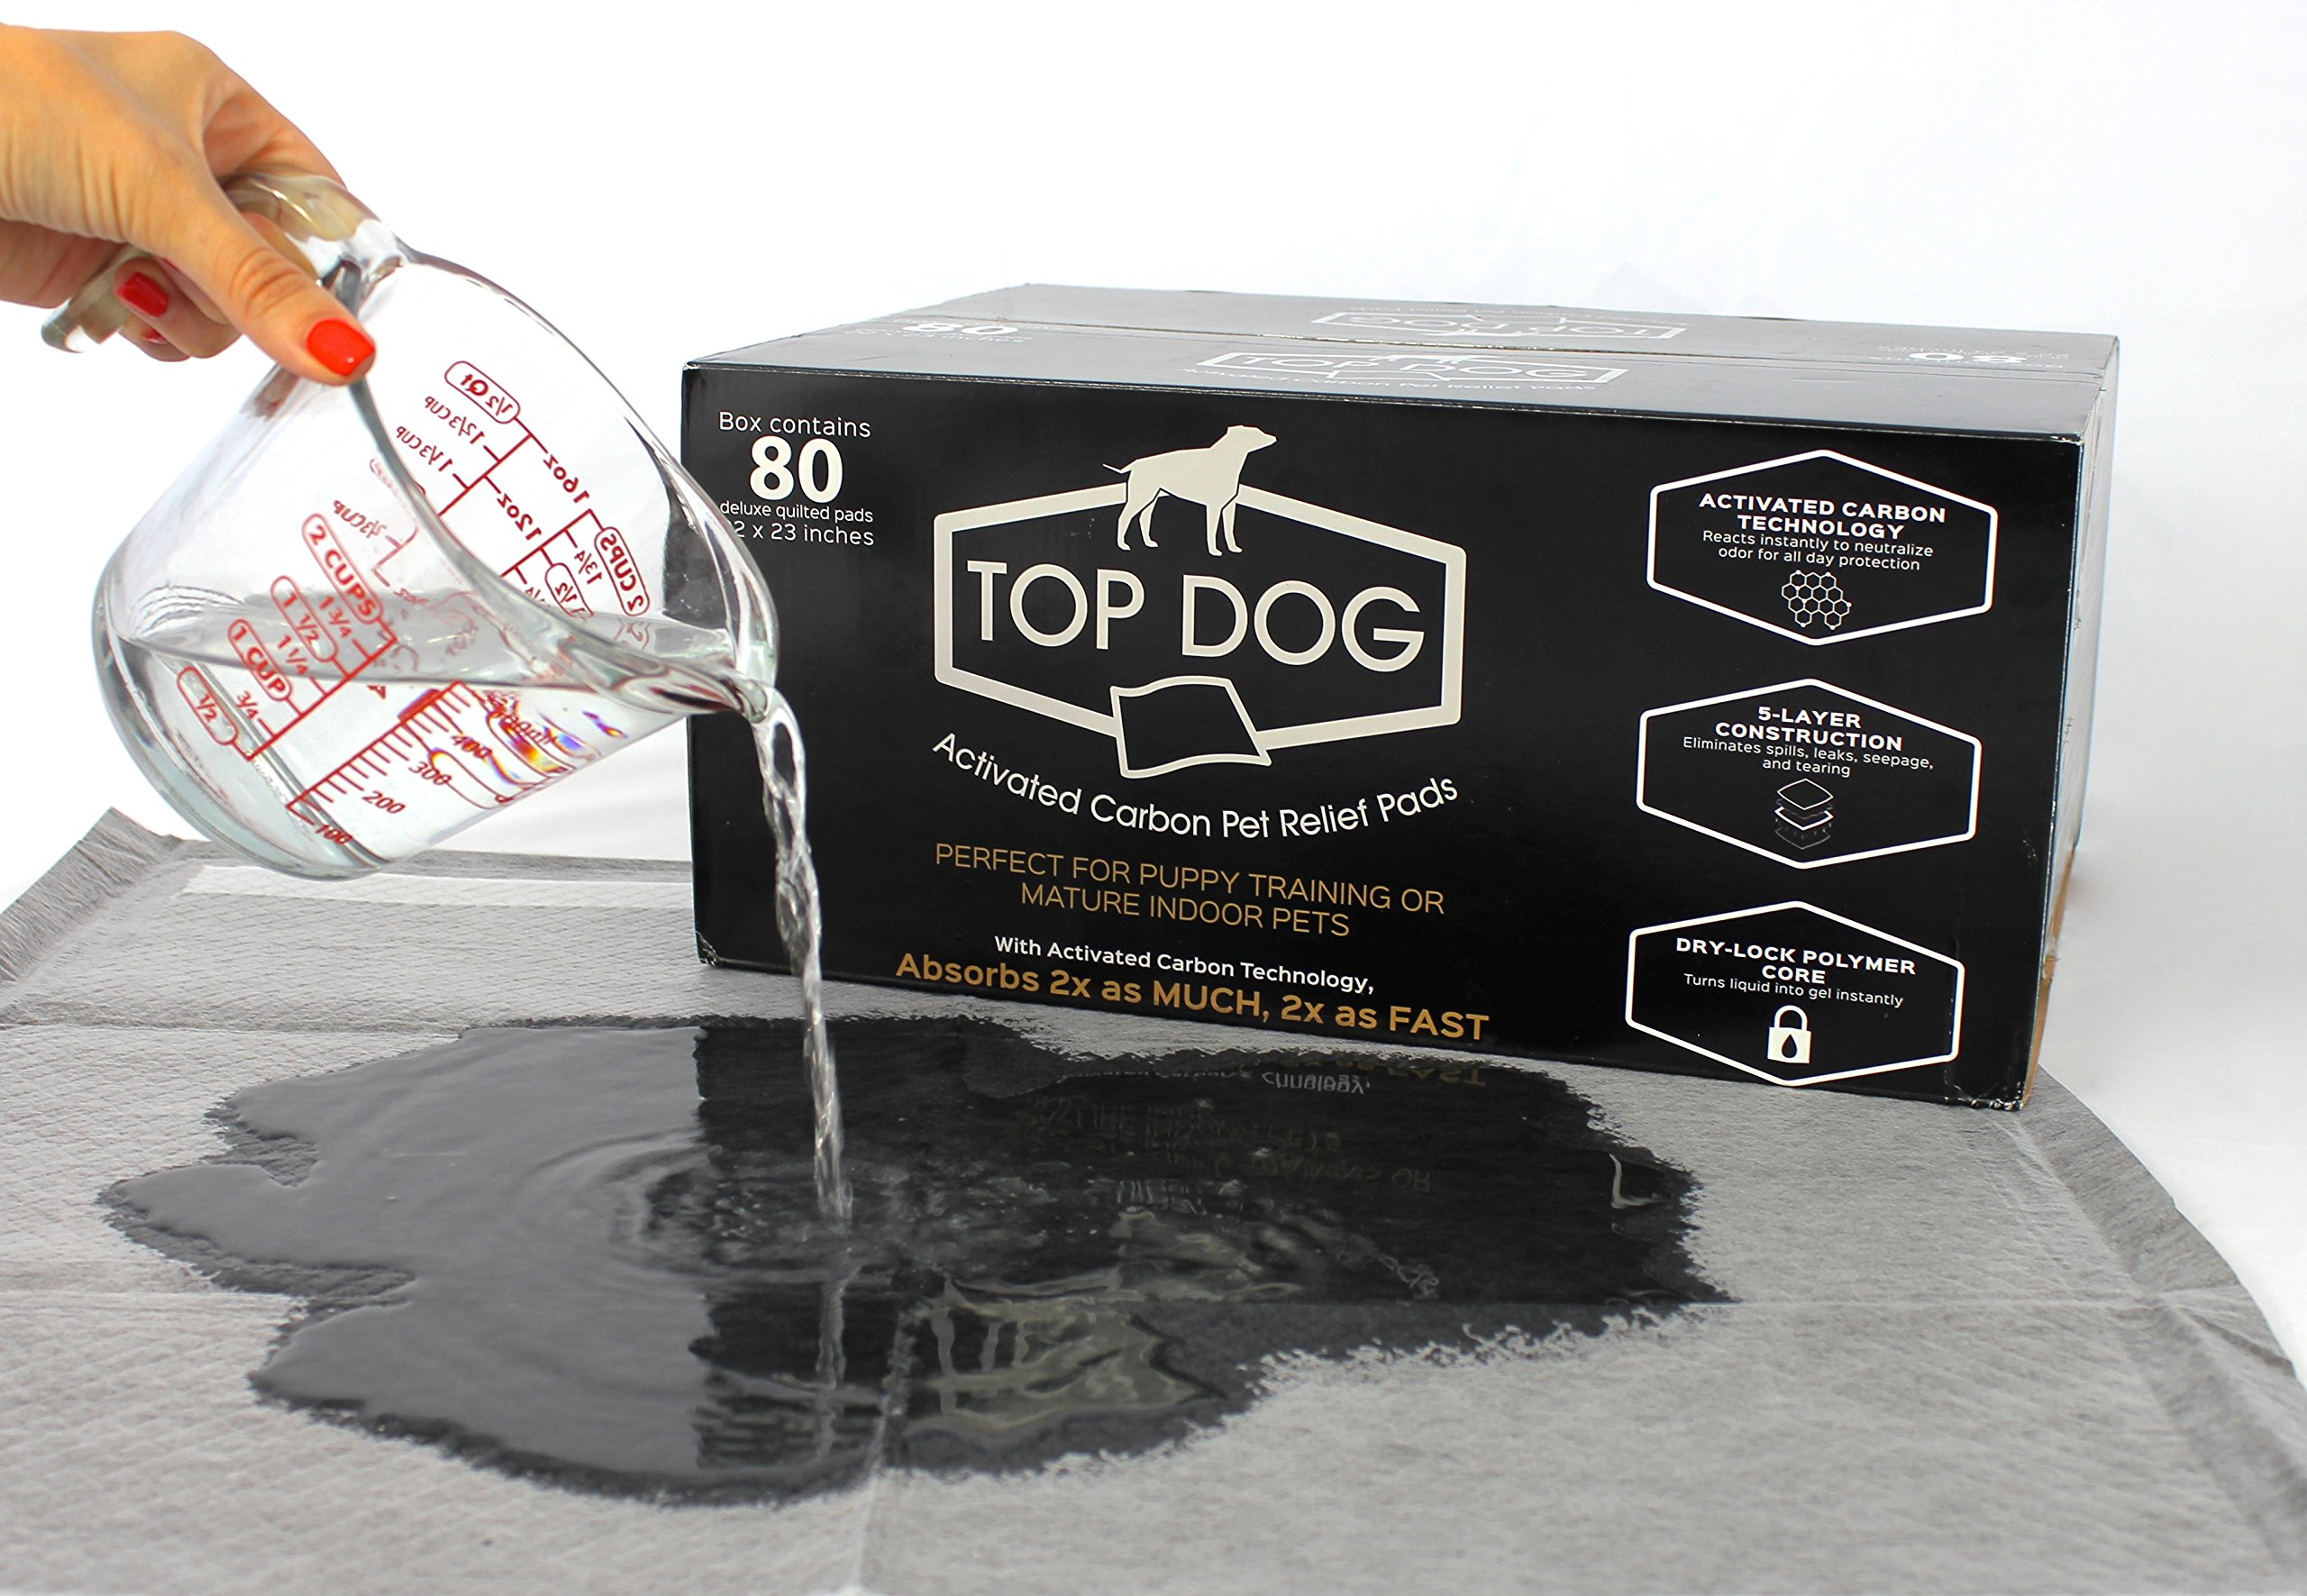 Top Dog Black Premium Puppy Pad and Dog Training Pads with Quick-Dry Odor Control Carbon, Perfect for Puppy Training and Mature Pets, 22 x 23, 80 Count